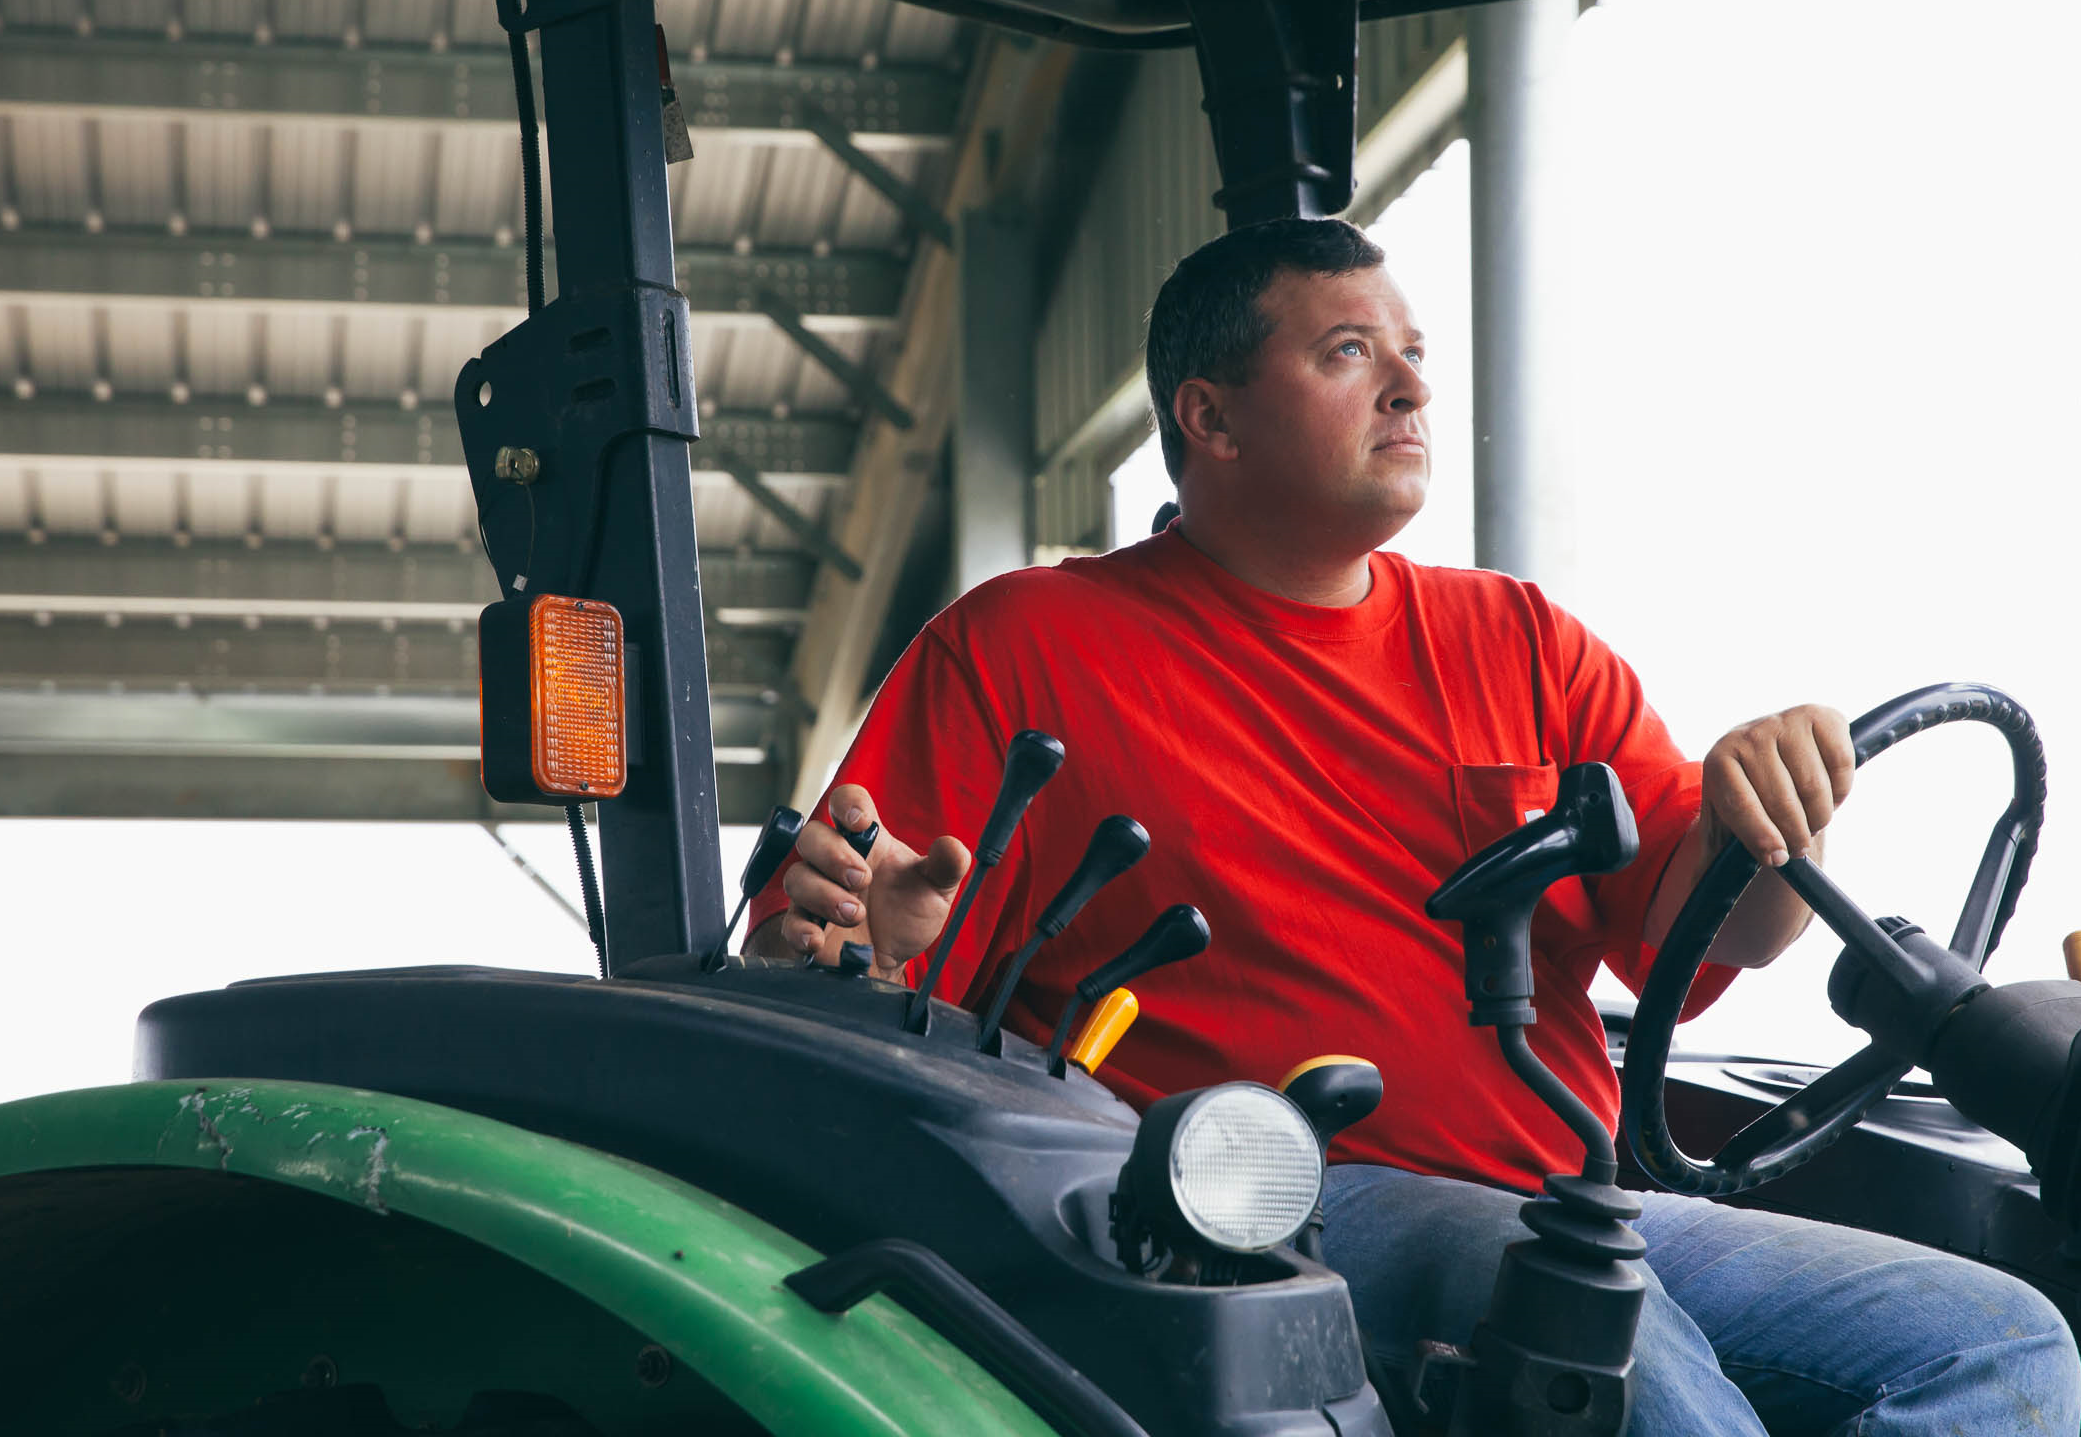 Brandon Oliver runs the tractor through the Composting Barn